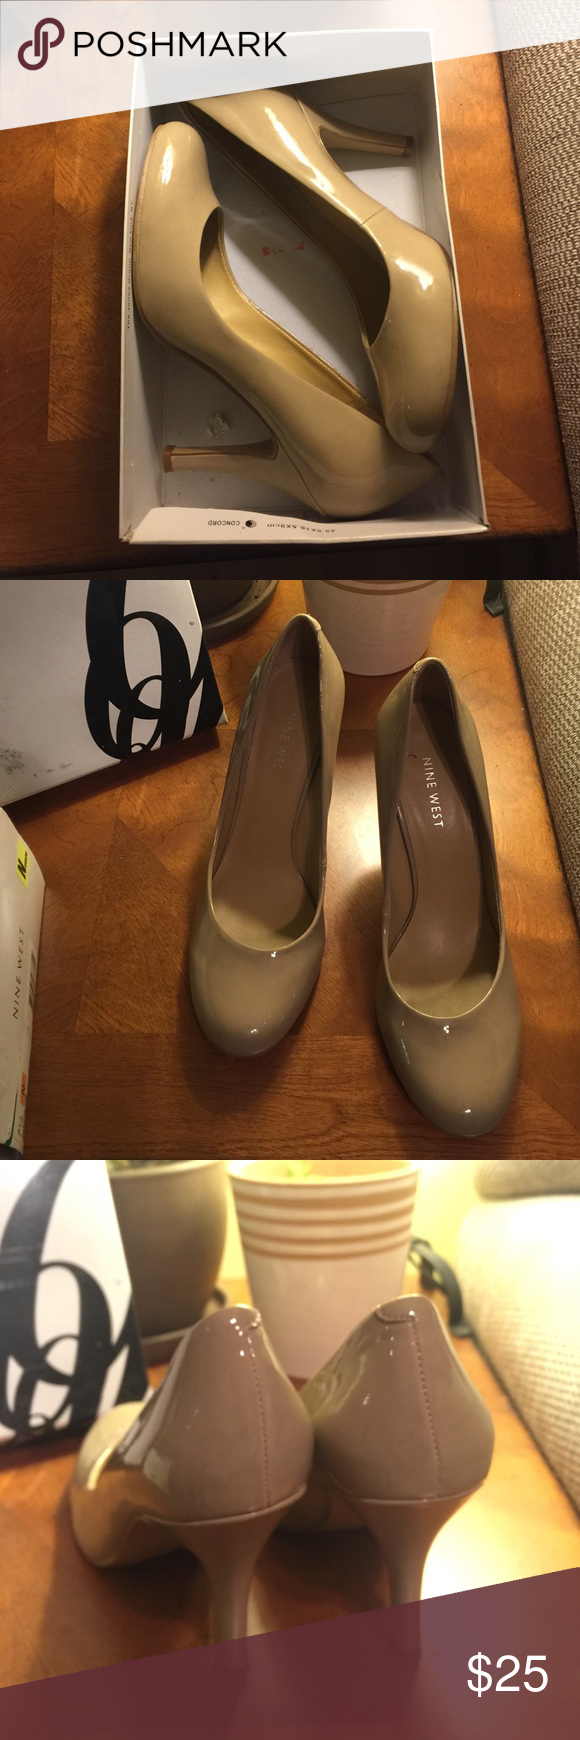 Nine West nude patent pumps size 7 1/2 barely worn Hardly worn shoes great for any occasion! No scuffs. Like new. Nine West Shoes Heels